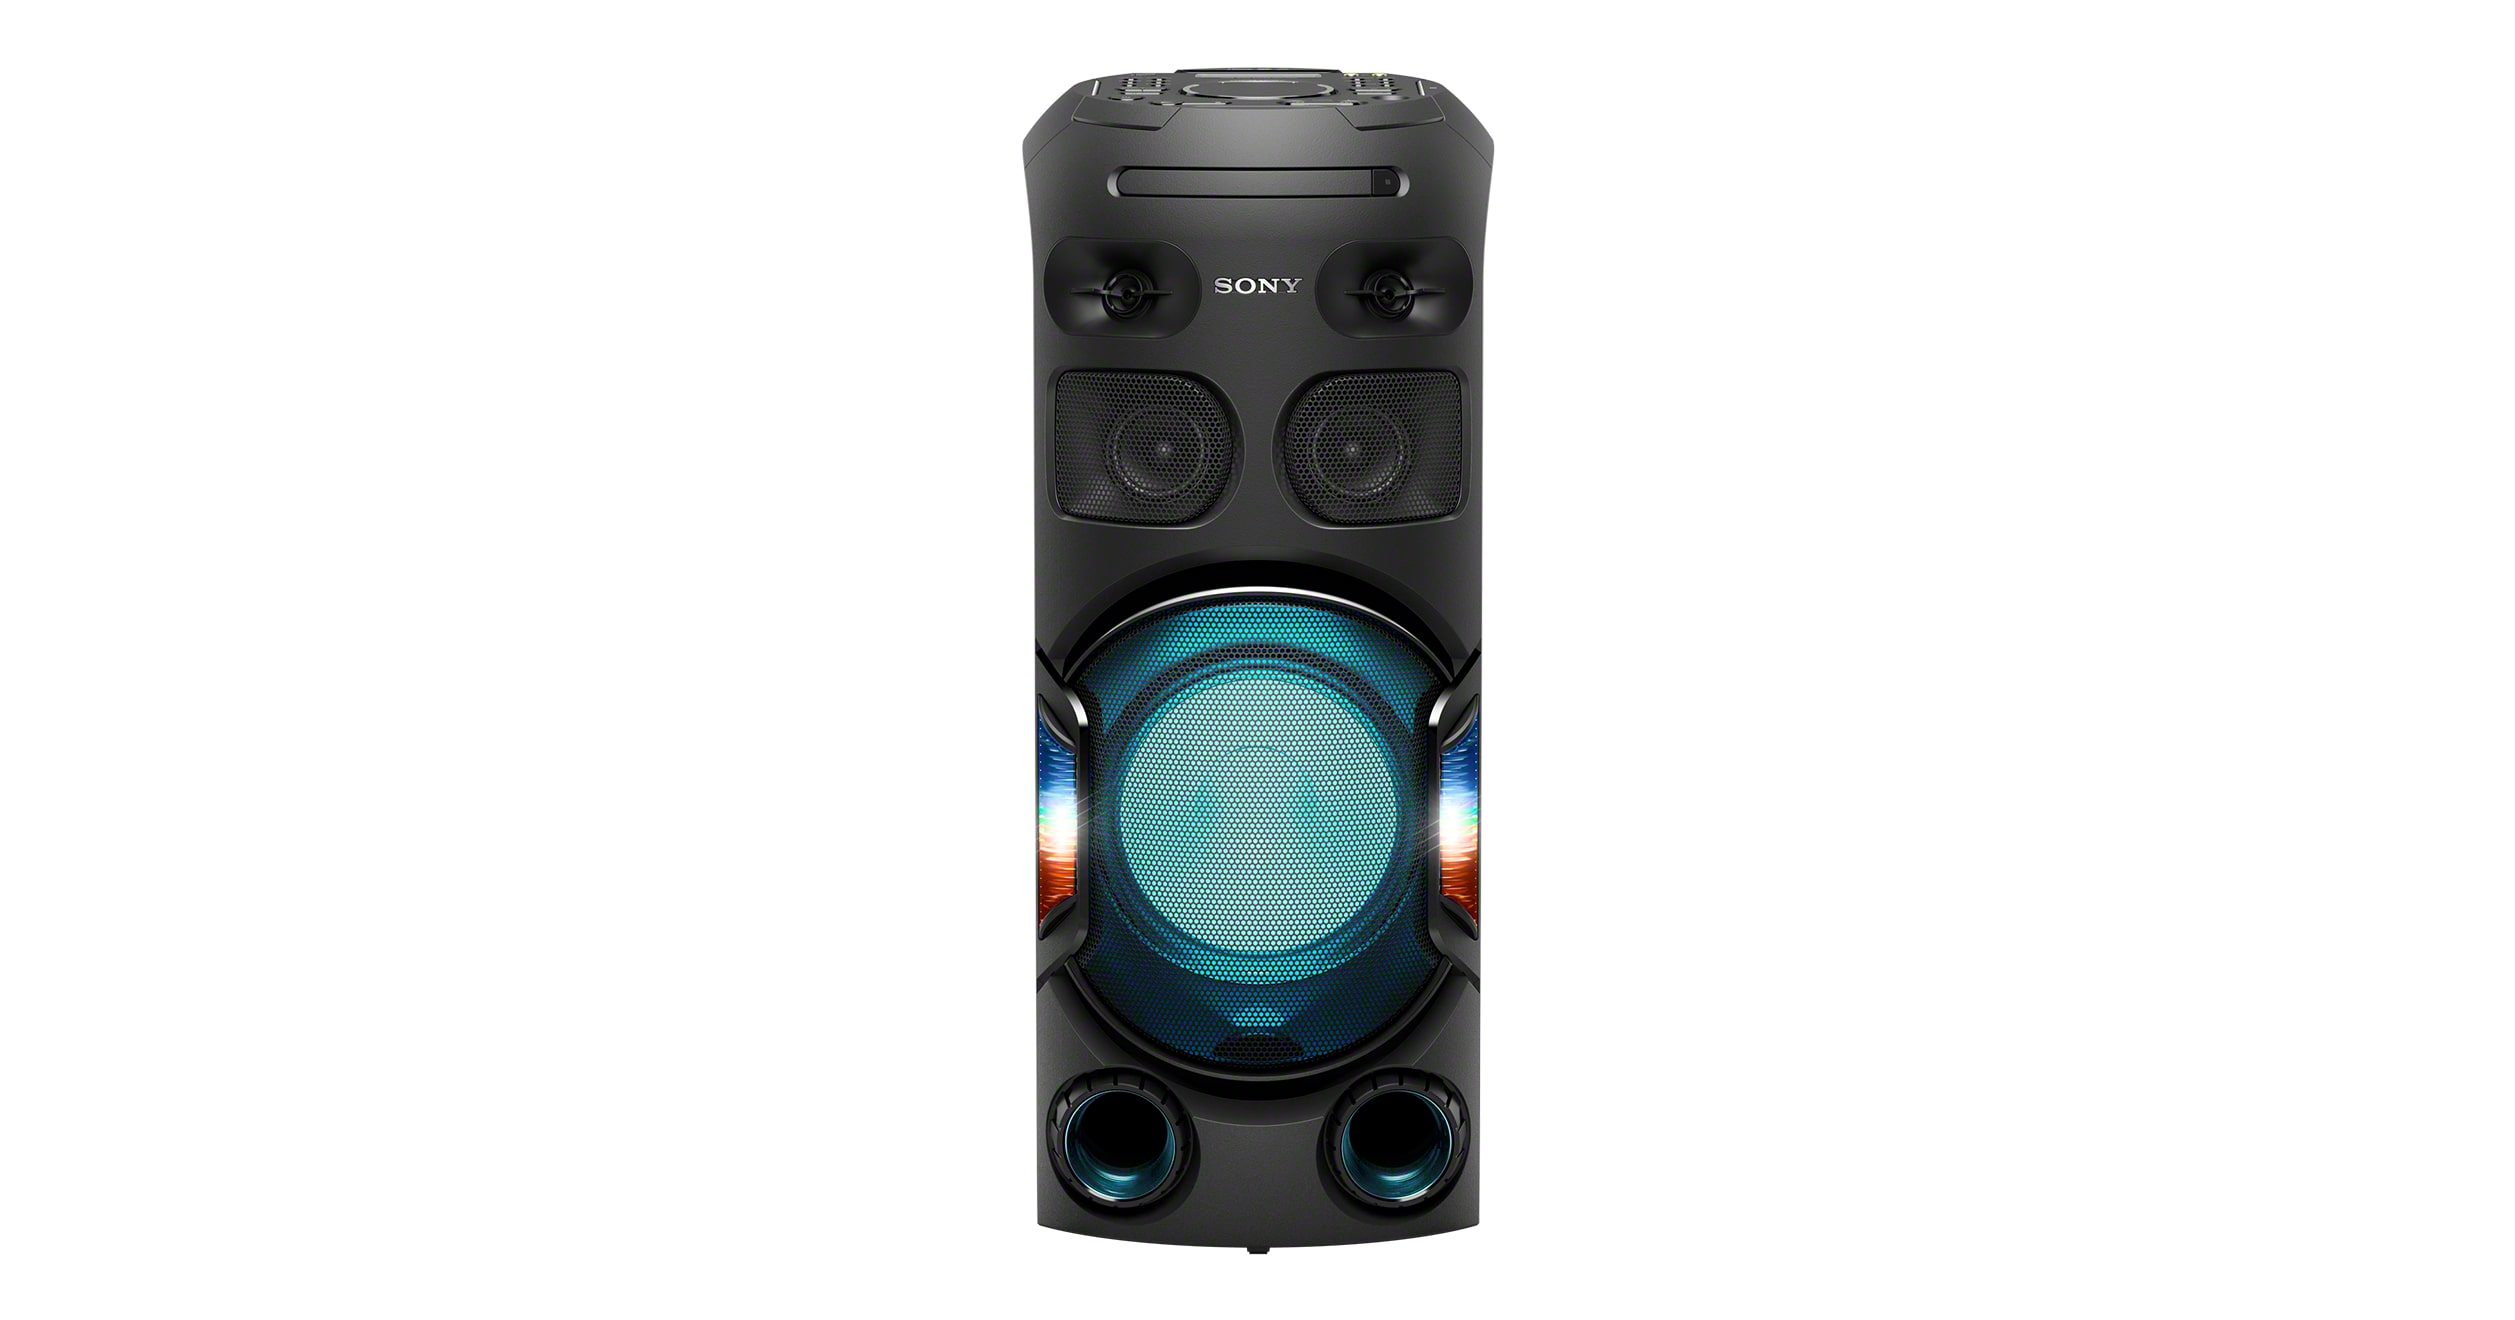 how to take off child lock on sony speaker